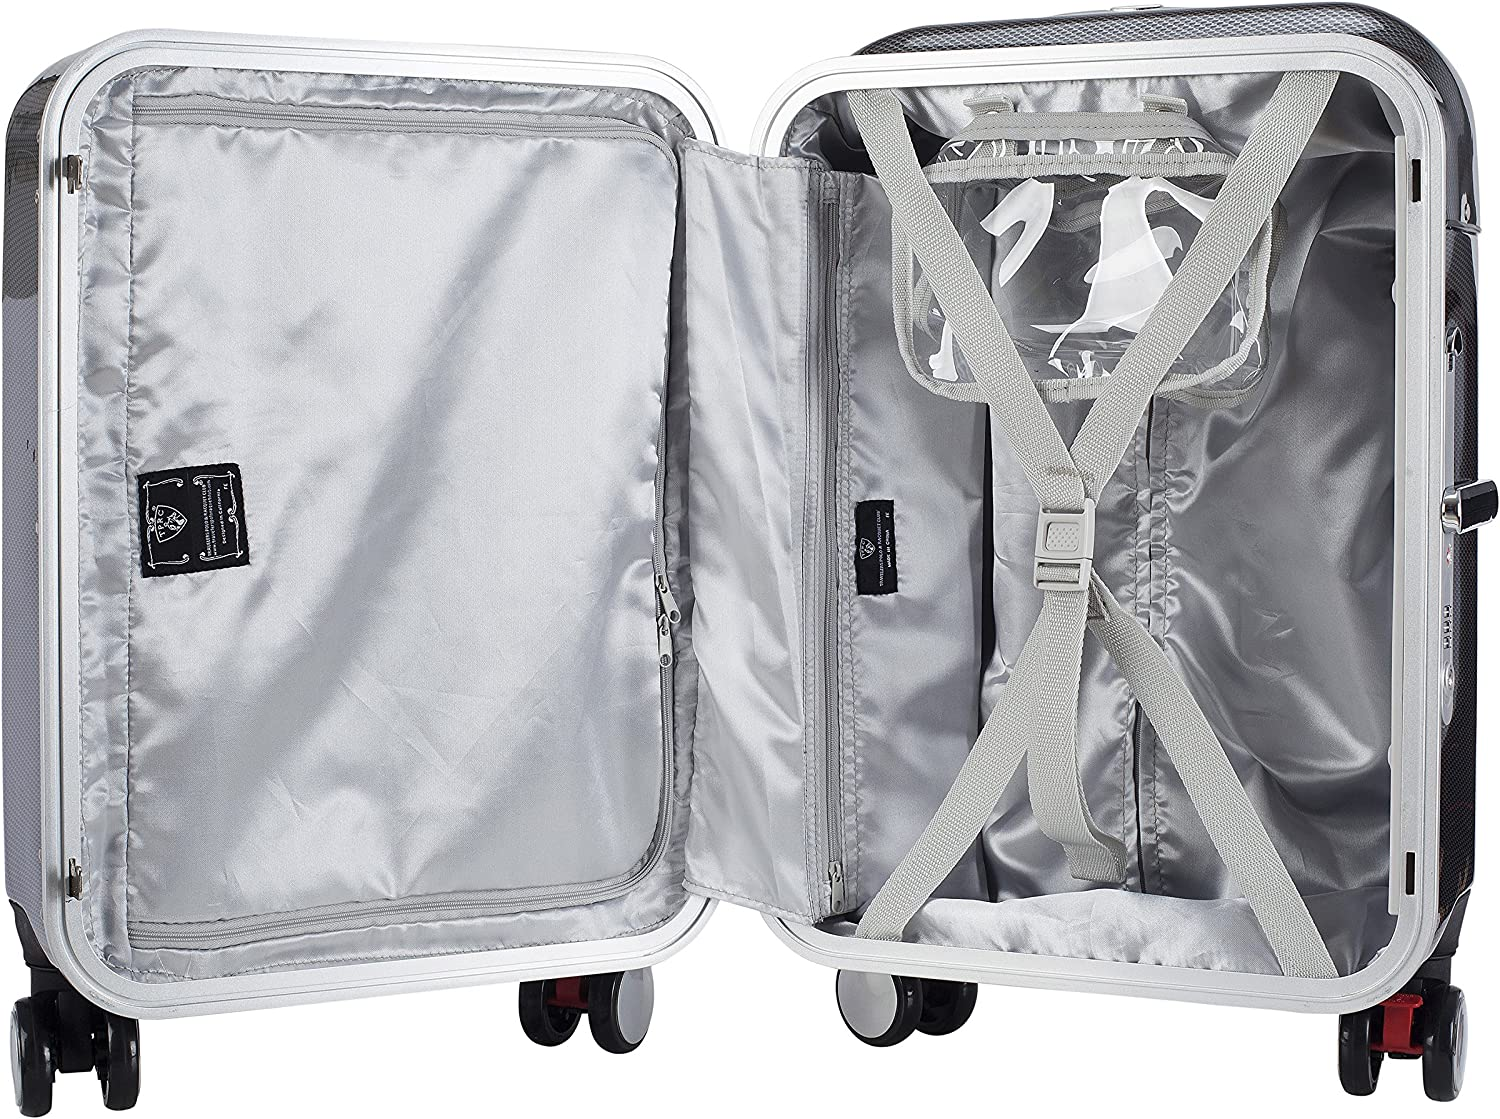 Black TPRC Seat-On 20 Aluminum Frame Hardside Carry-On with Ergonomic Seating Area on Top of Luggage